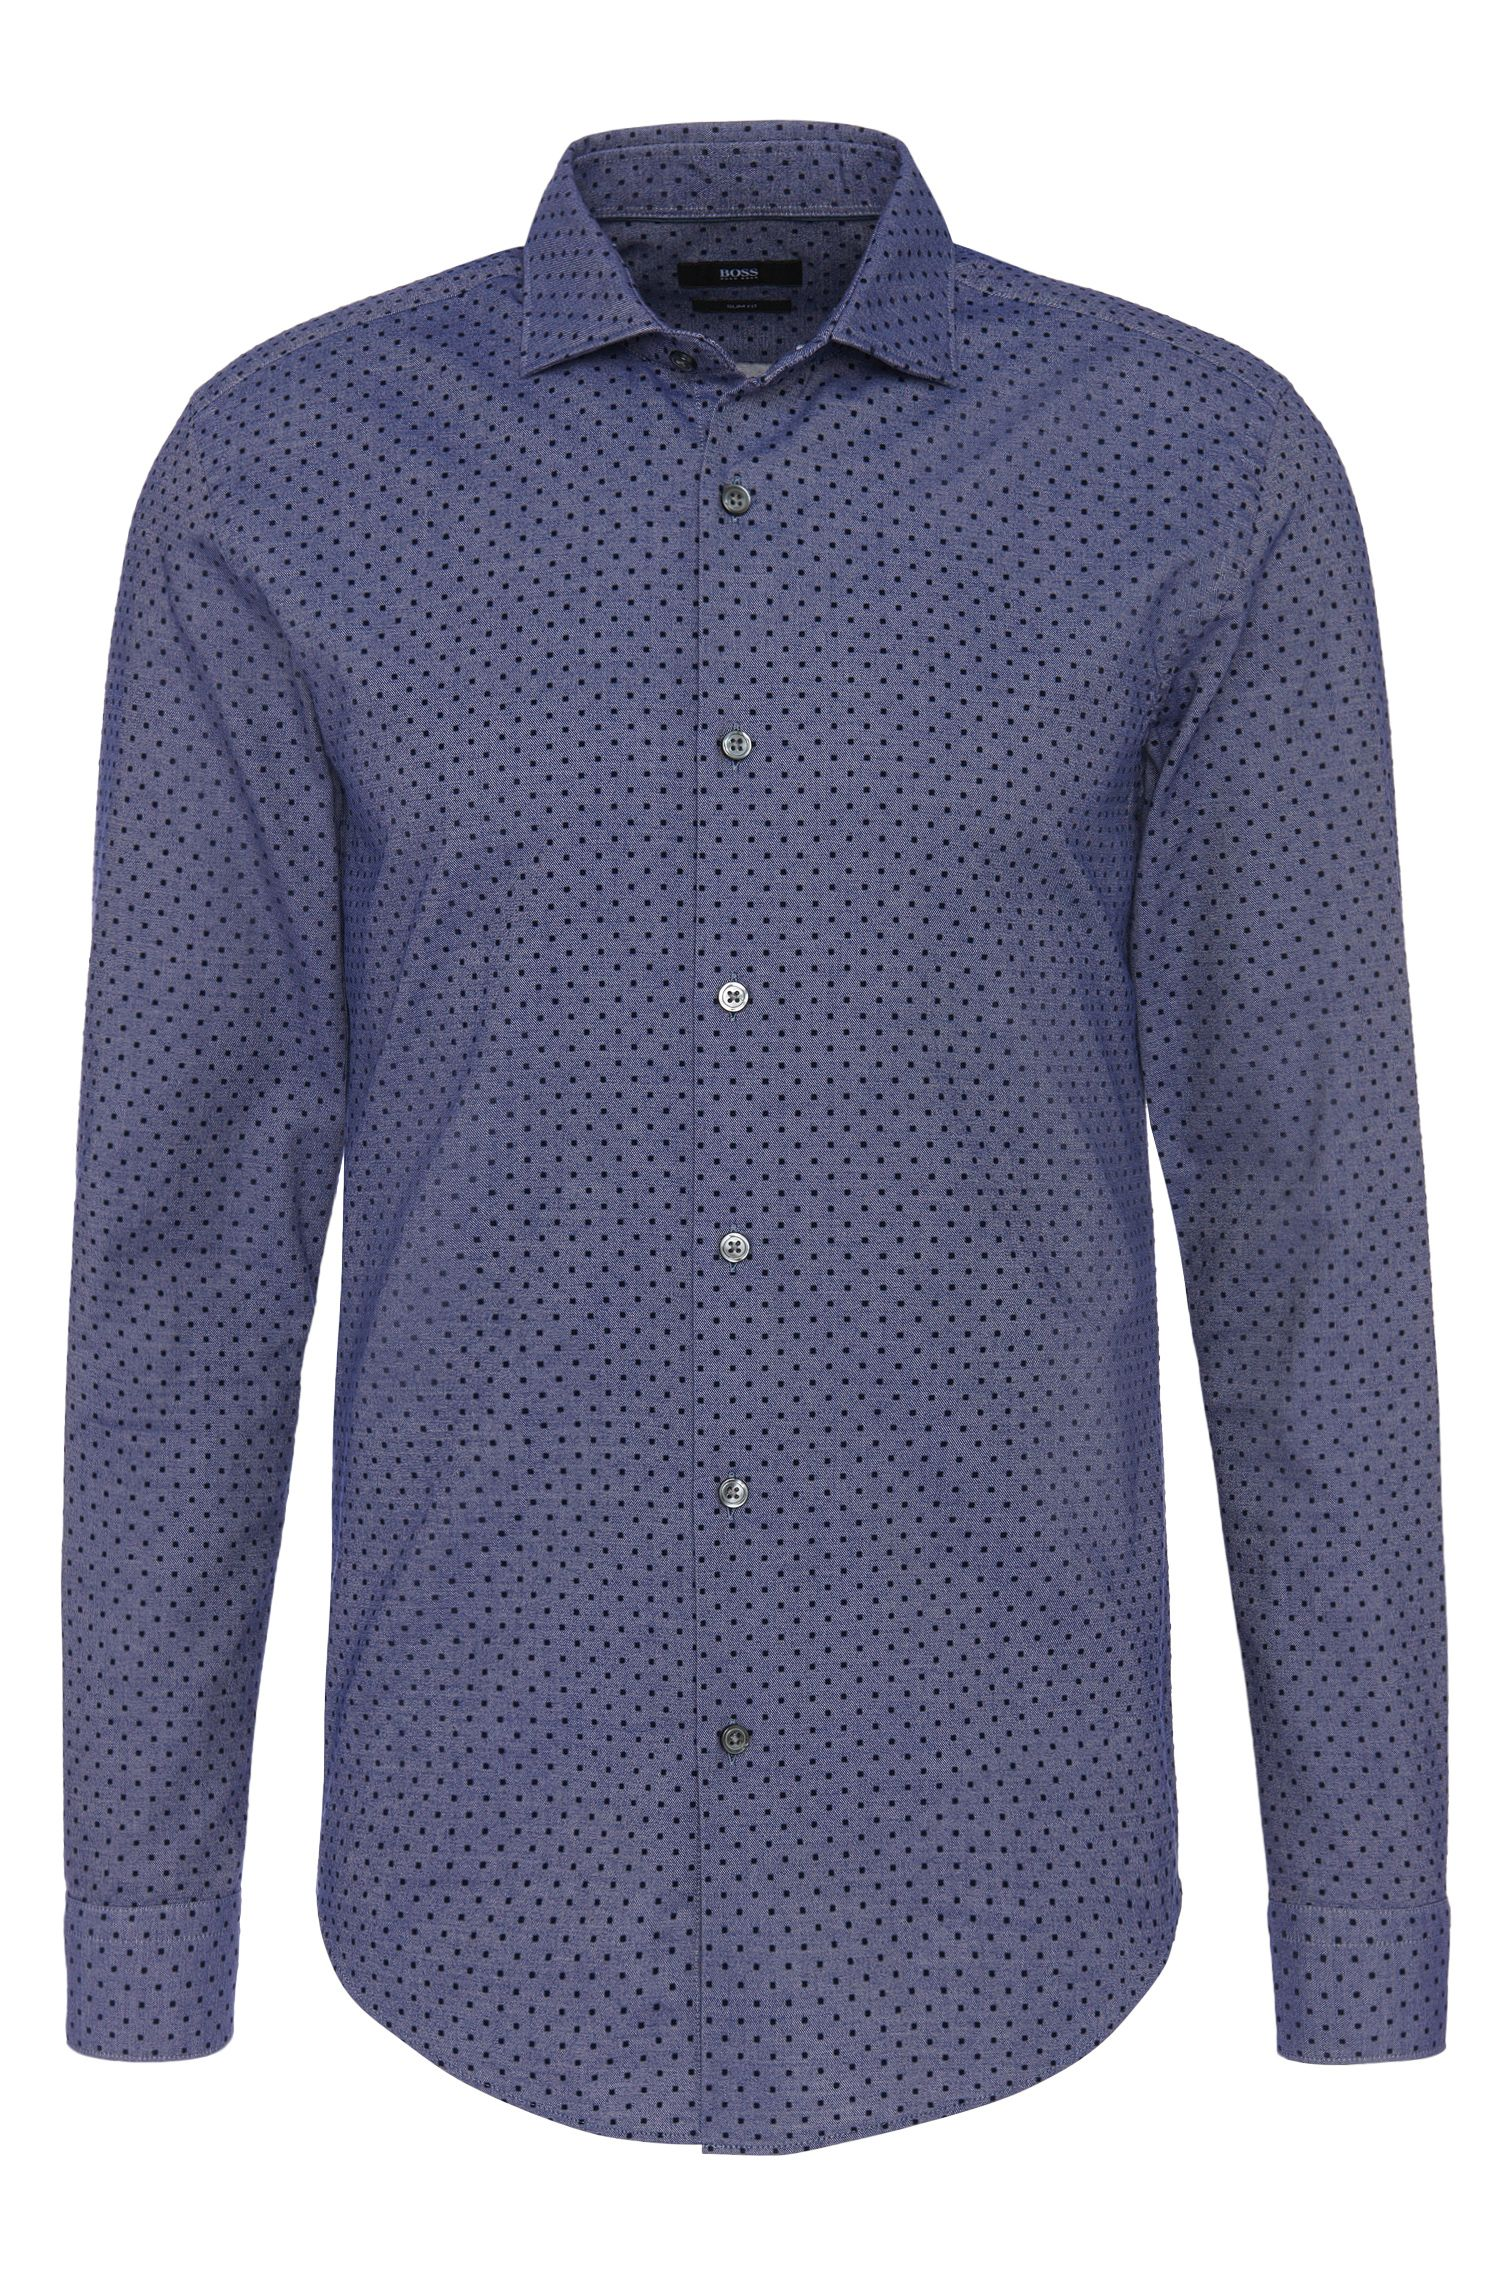 Polka dot pattern slim-fit shirt in cotton blend: 'Ridley_F'